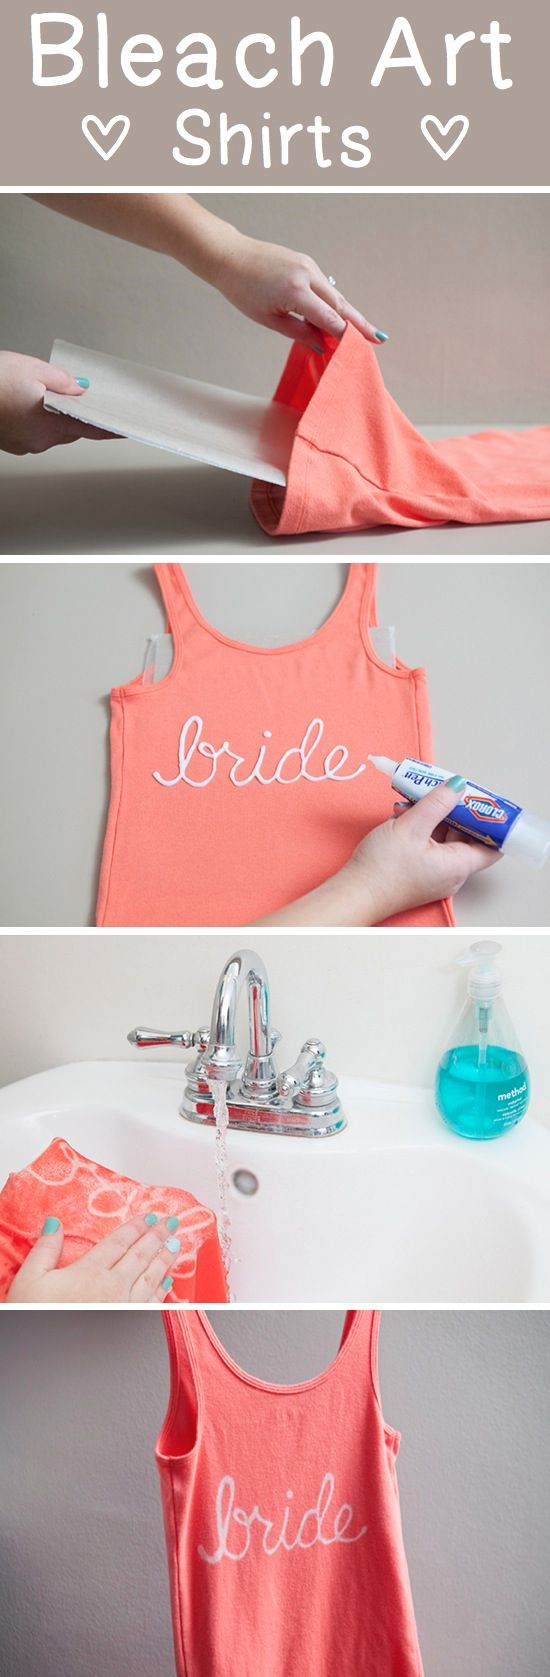 A cute shirt and a Clorox bleach gel pen is all you will need to make a bleach bride t-shirt. Why not make one for each of your bridesmaids?